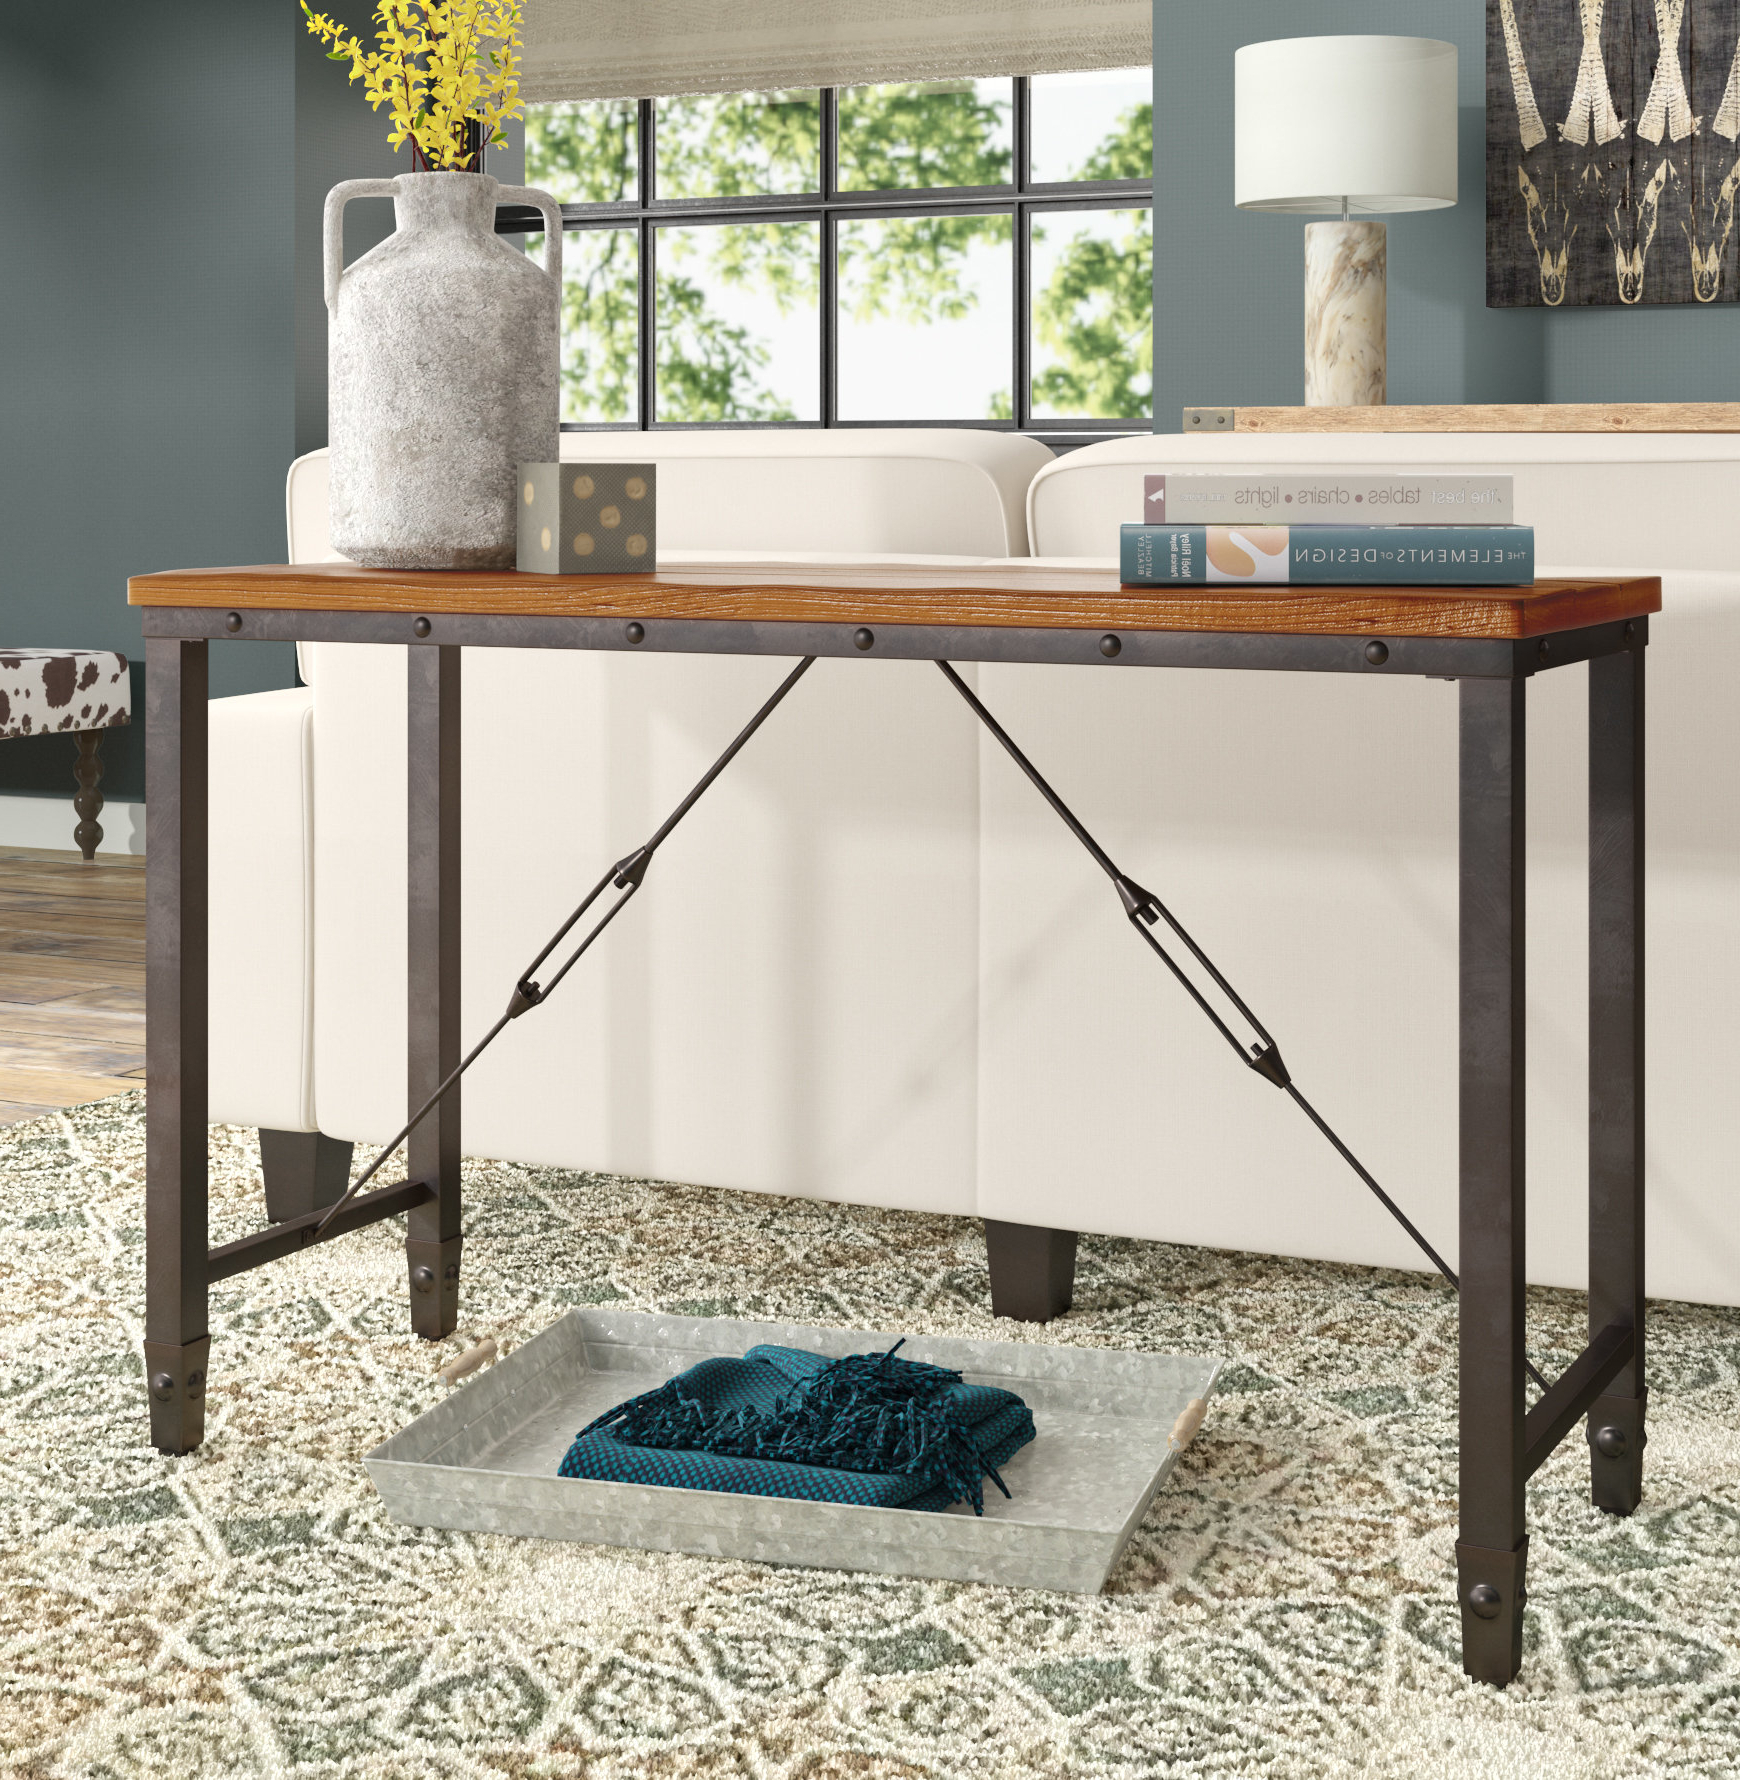 Mix Patina Metal Frame Console Tables Pertaining To Famous Industrial Console Tables You'll Love (Gallery 8 of 20)